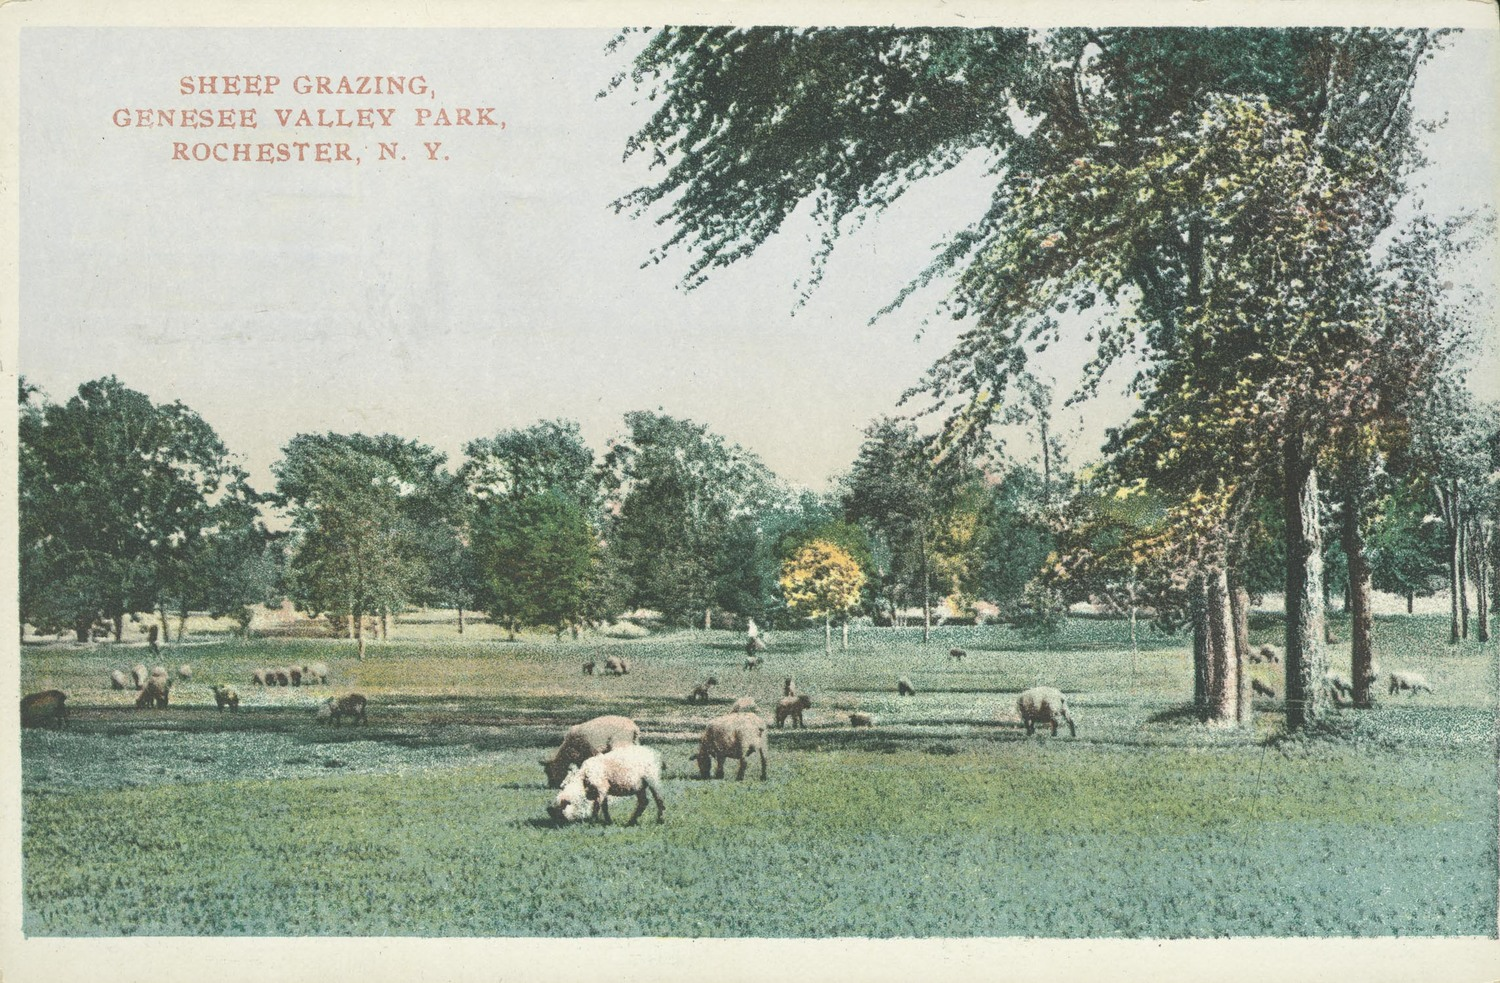 Sheep Grazing, Genesee Valley Park, Rochester, N.Y.